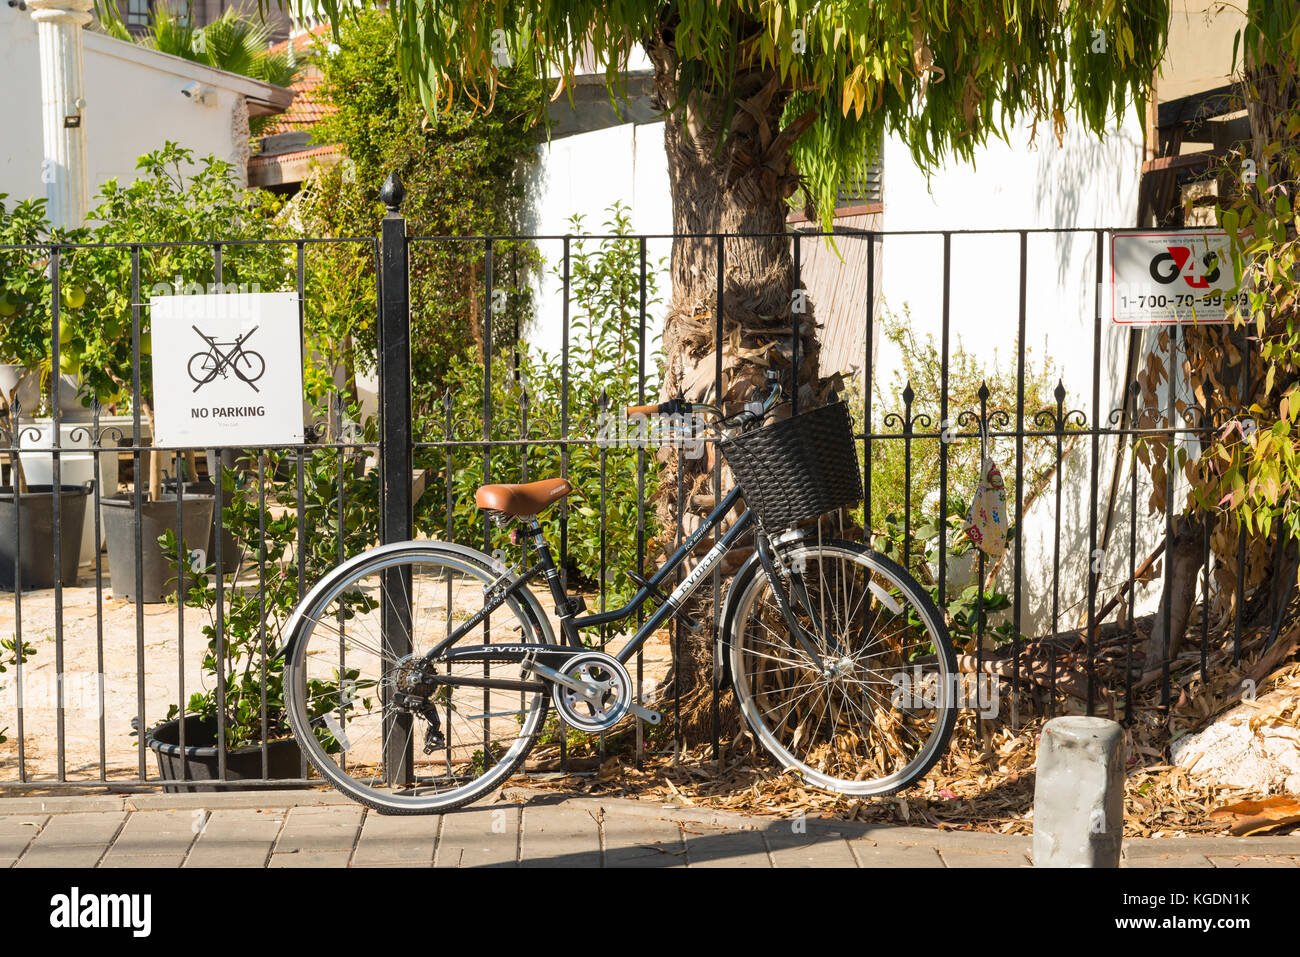 Israel The Holy Land Tel Aviv street scene Evoke Ice Maiden bike bicycle cycle padlocked to railings by no parking - Stock Image